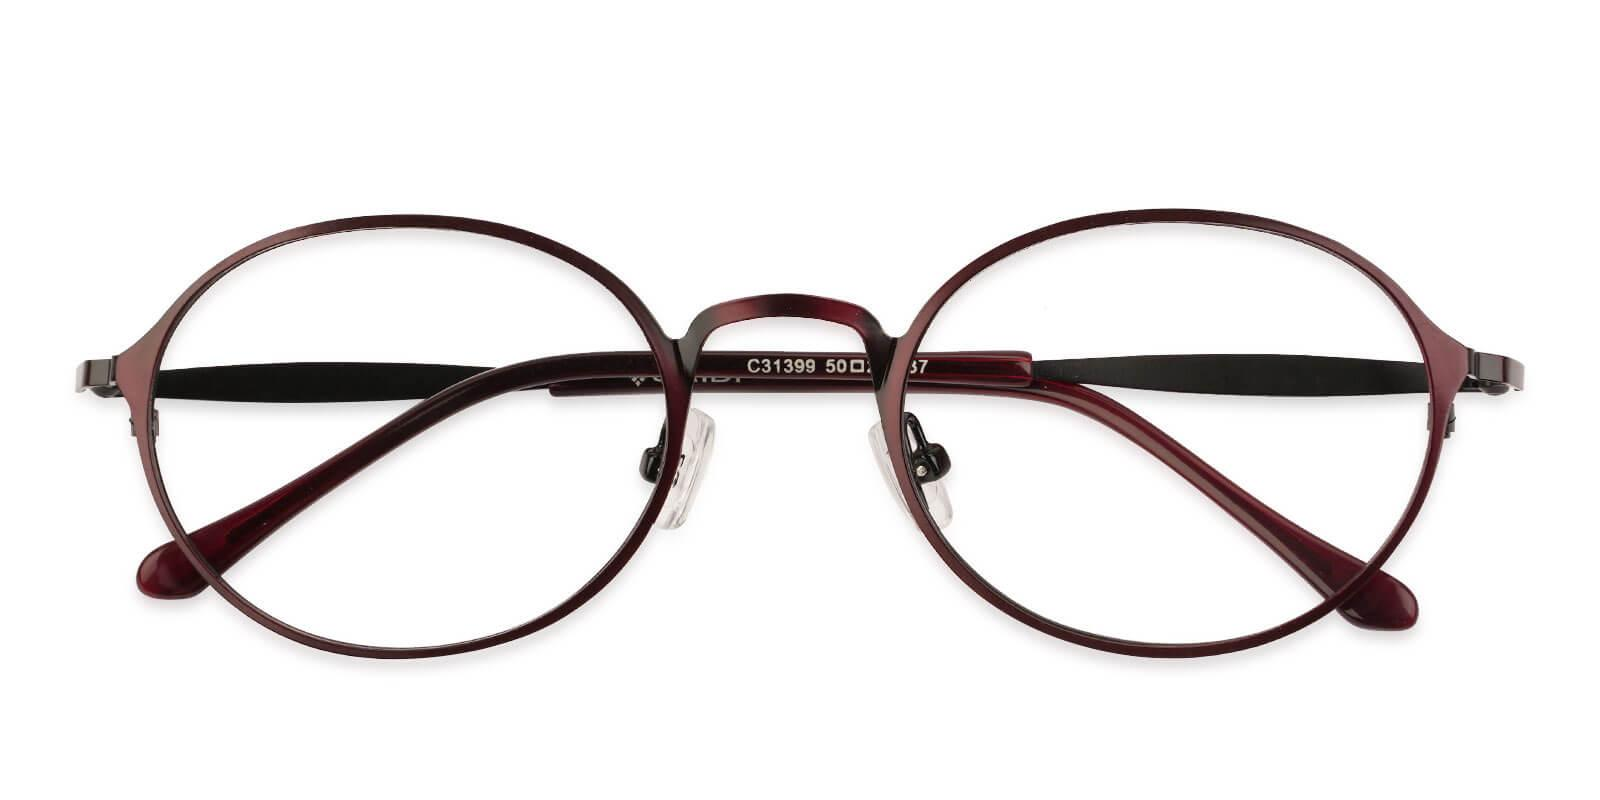 Toughery Red Metal Eyeglasses , NosePads Frames from ABBE Glasses